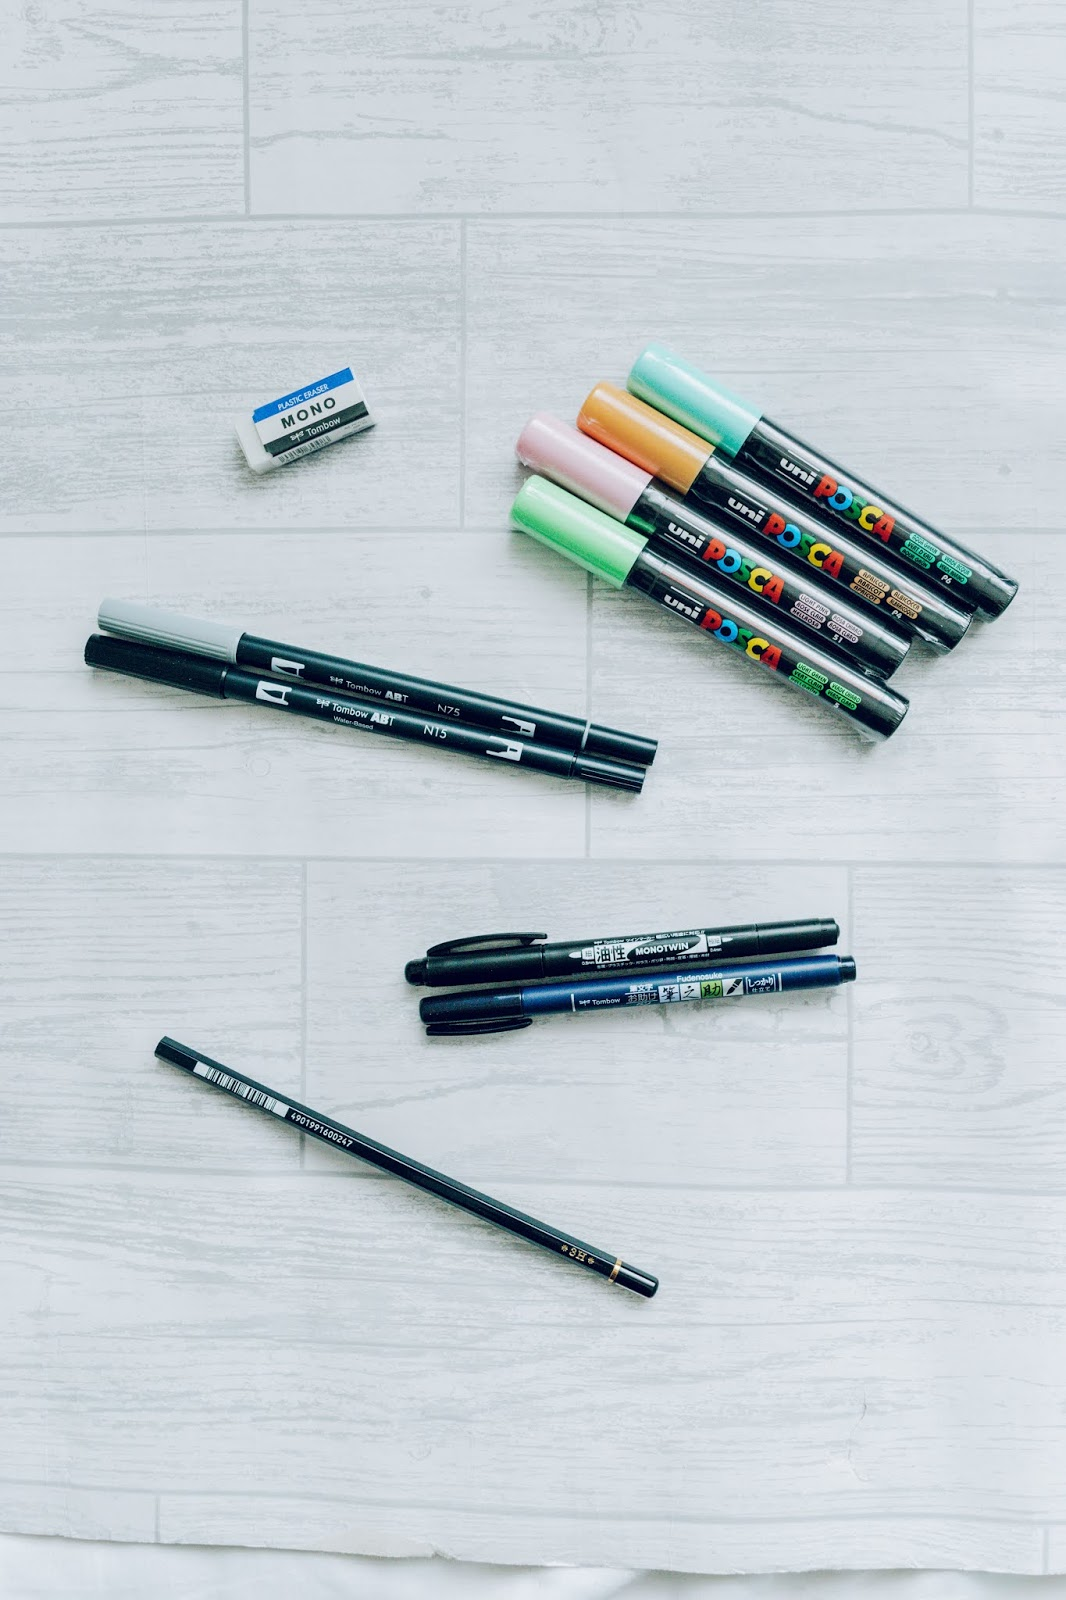 A selection of various colourful and black brush pens and paint pens.